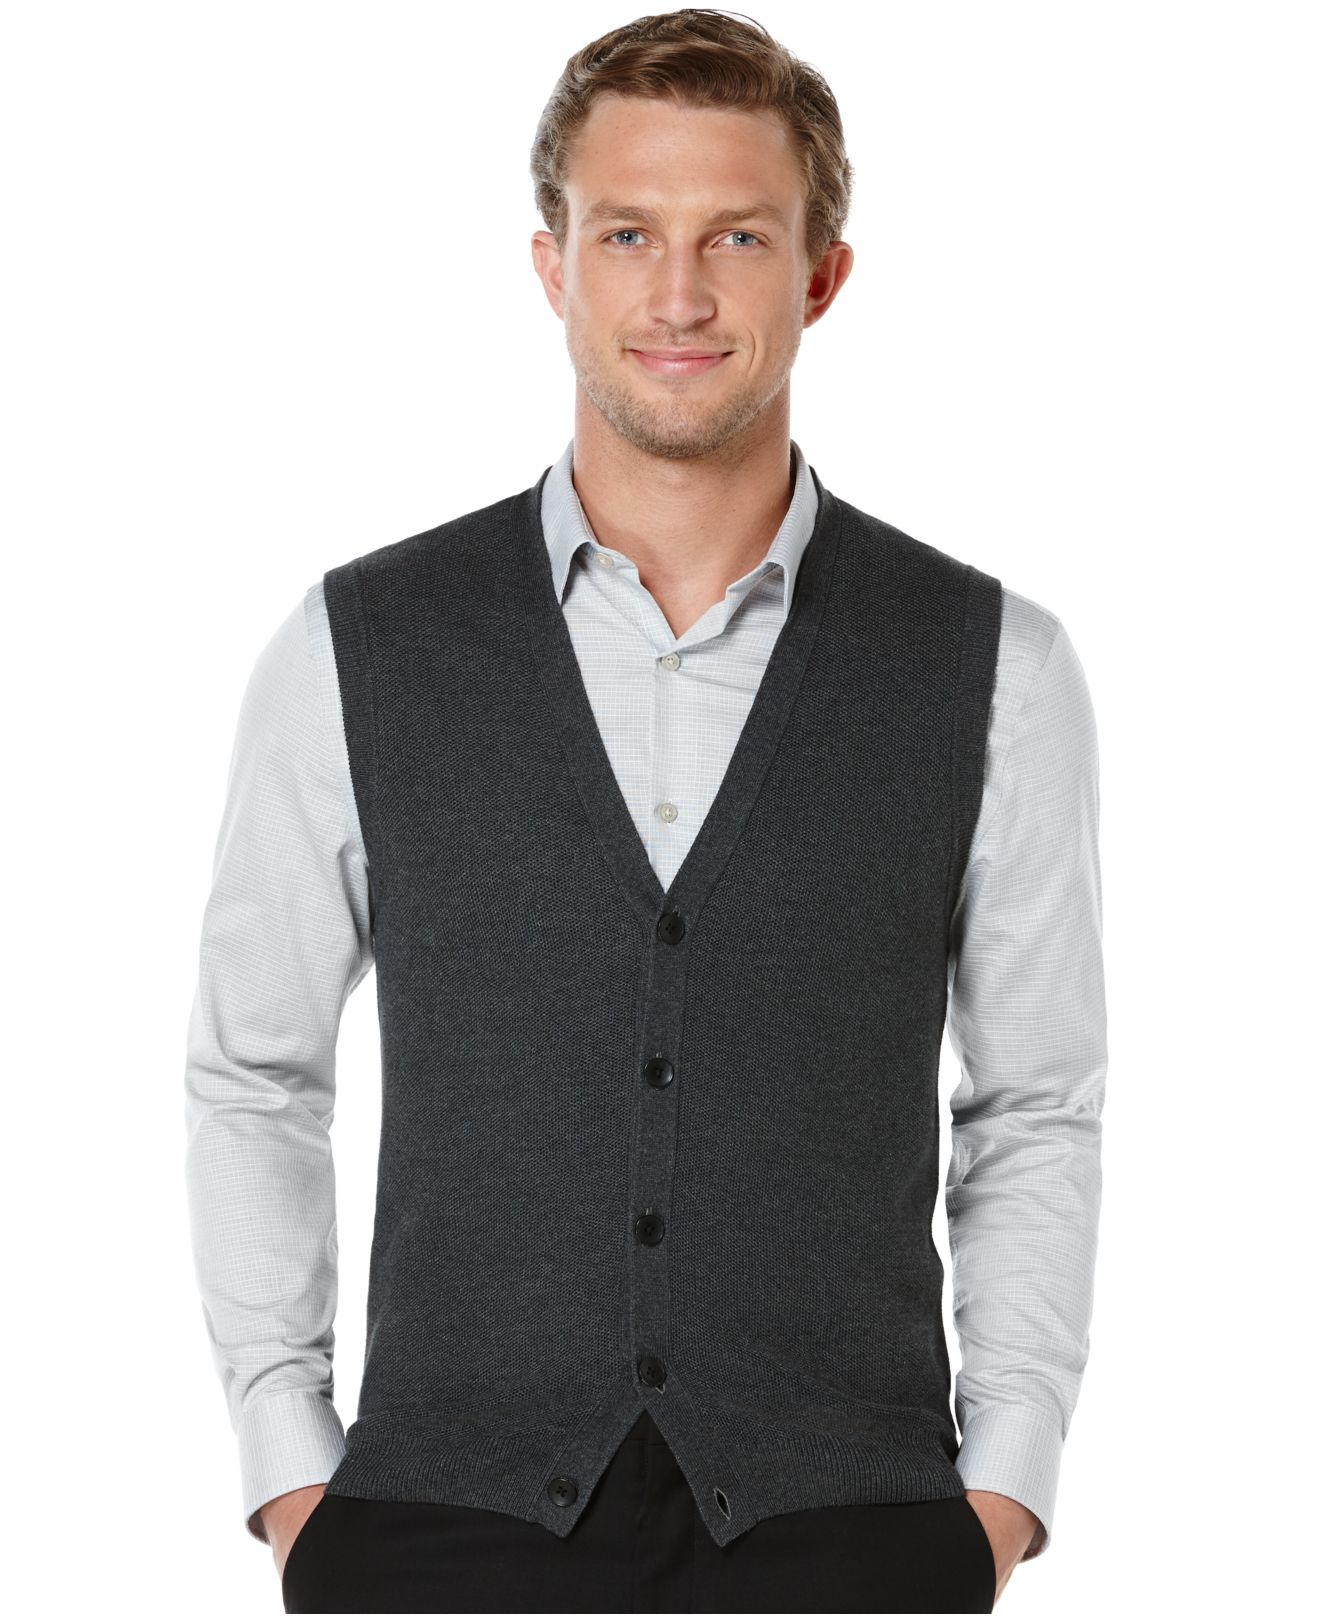 f8b92f09f4 Lyst - Perry Ellis Solid Textured Sweater Vest in Gray for Men